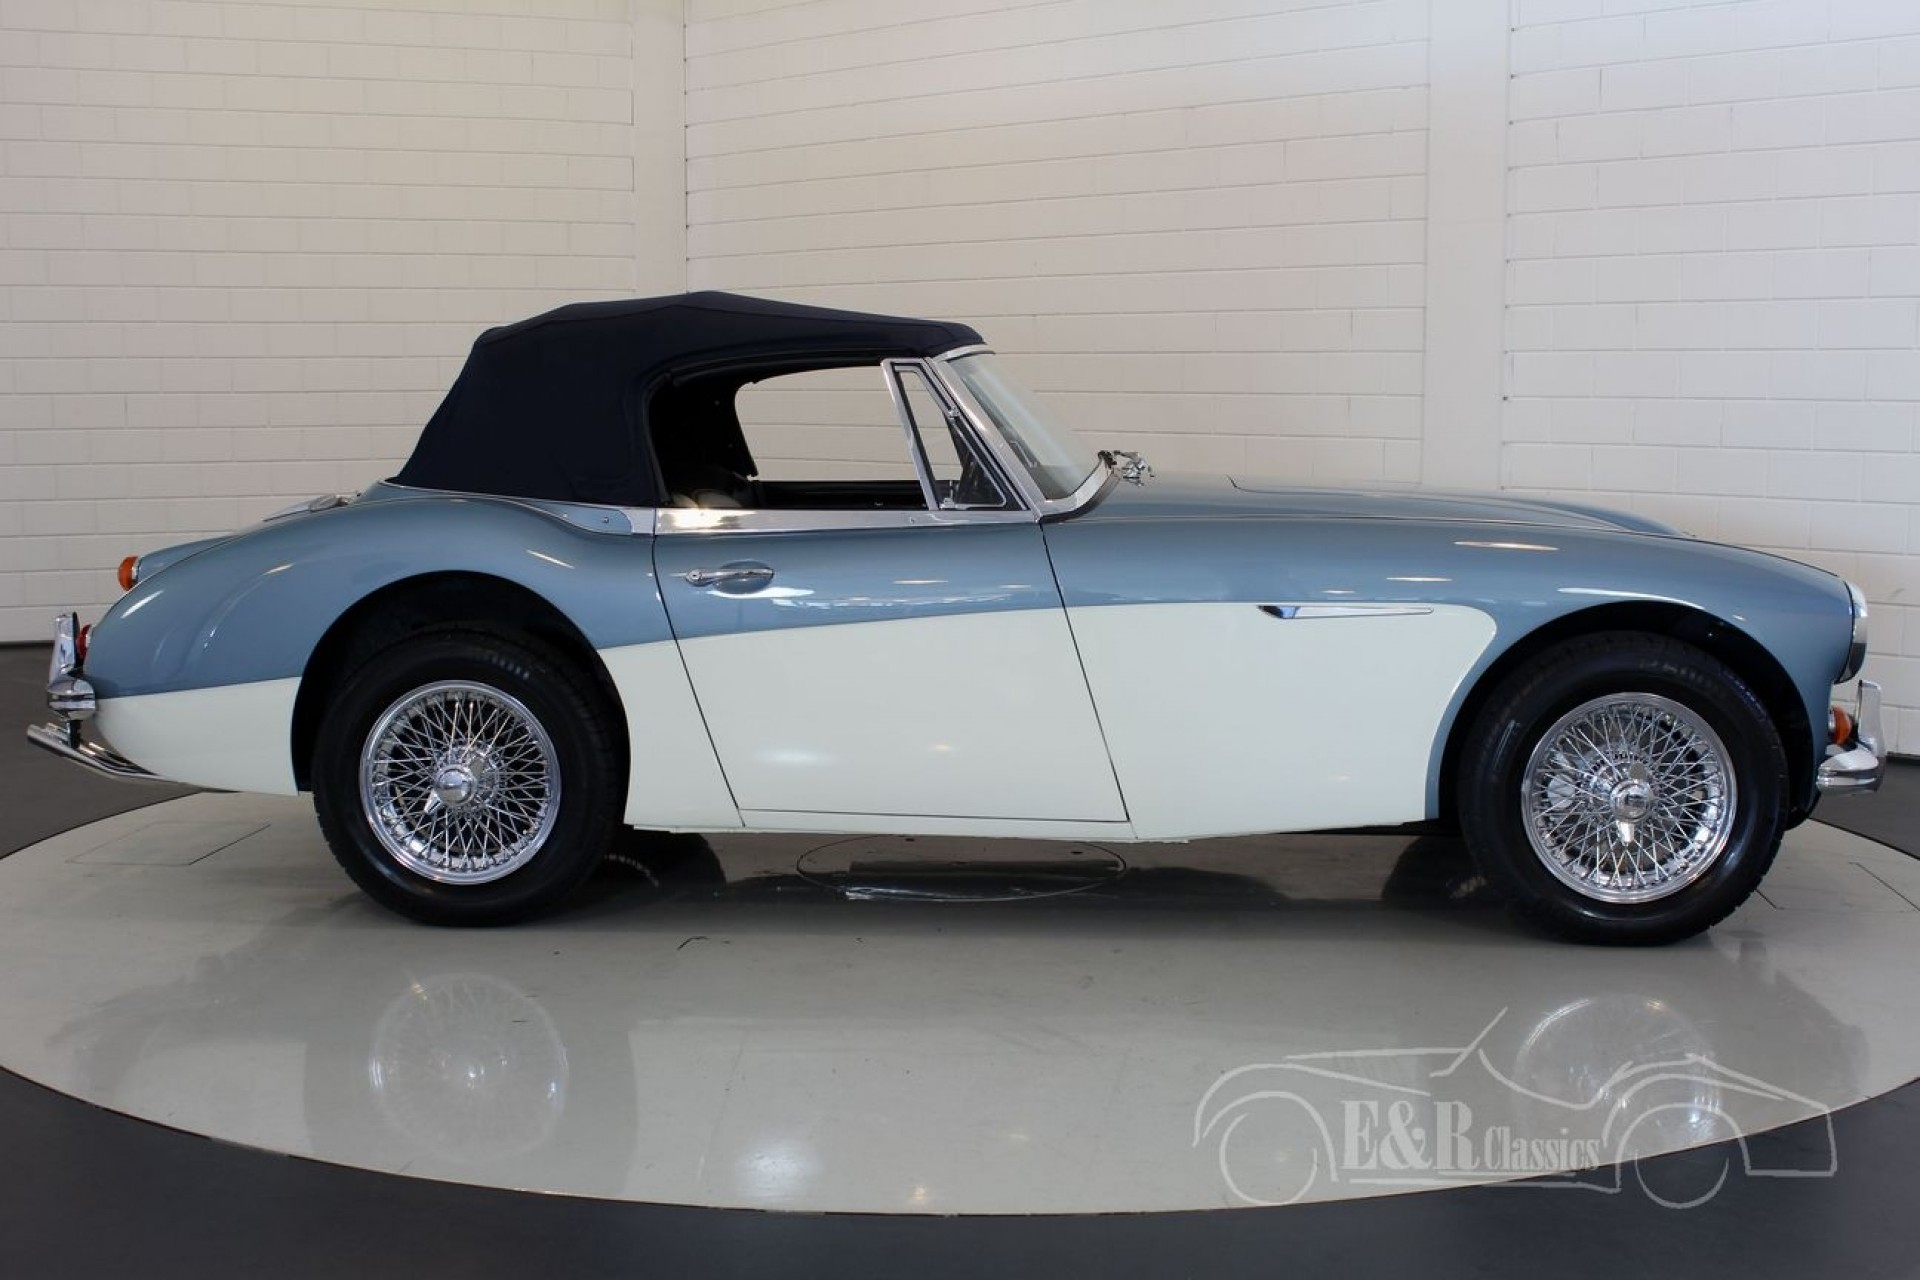 Honda Union City >> Austin Healey 3000 MK3 1965 for sale at ERclassics